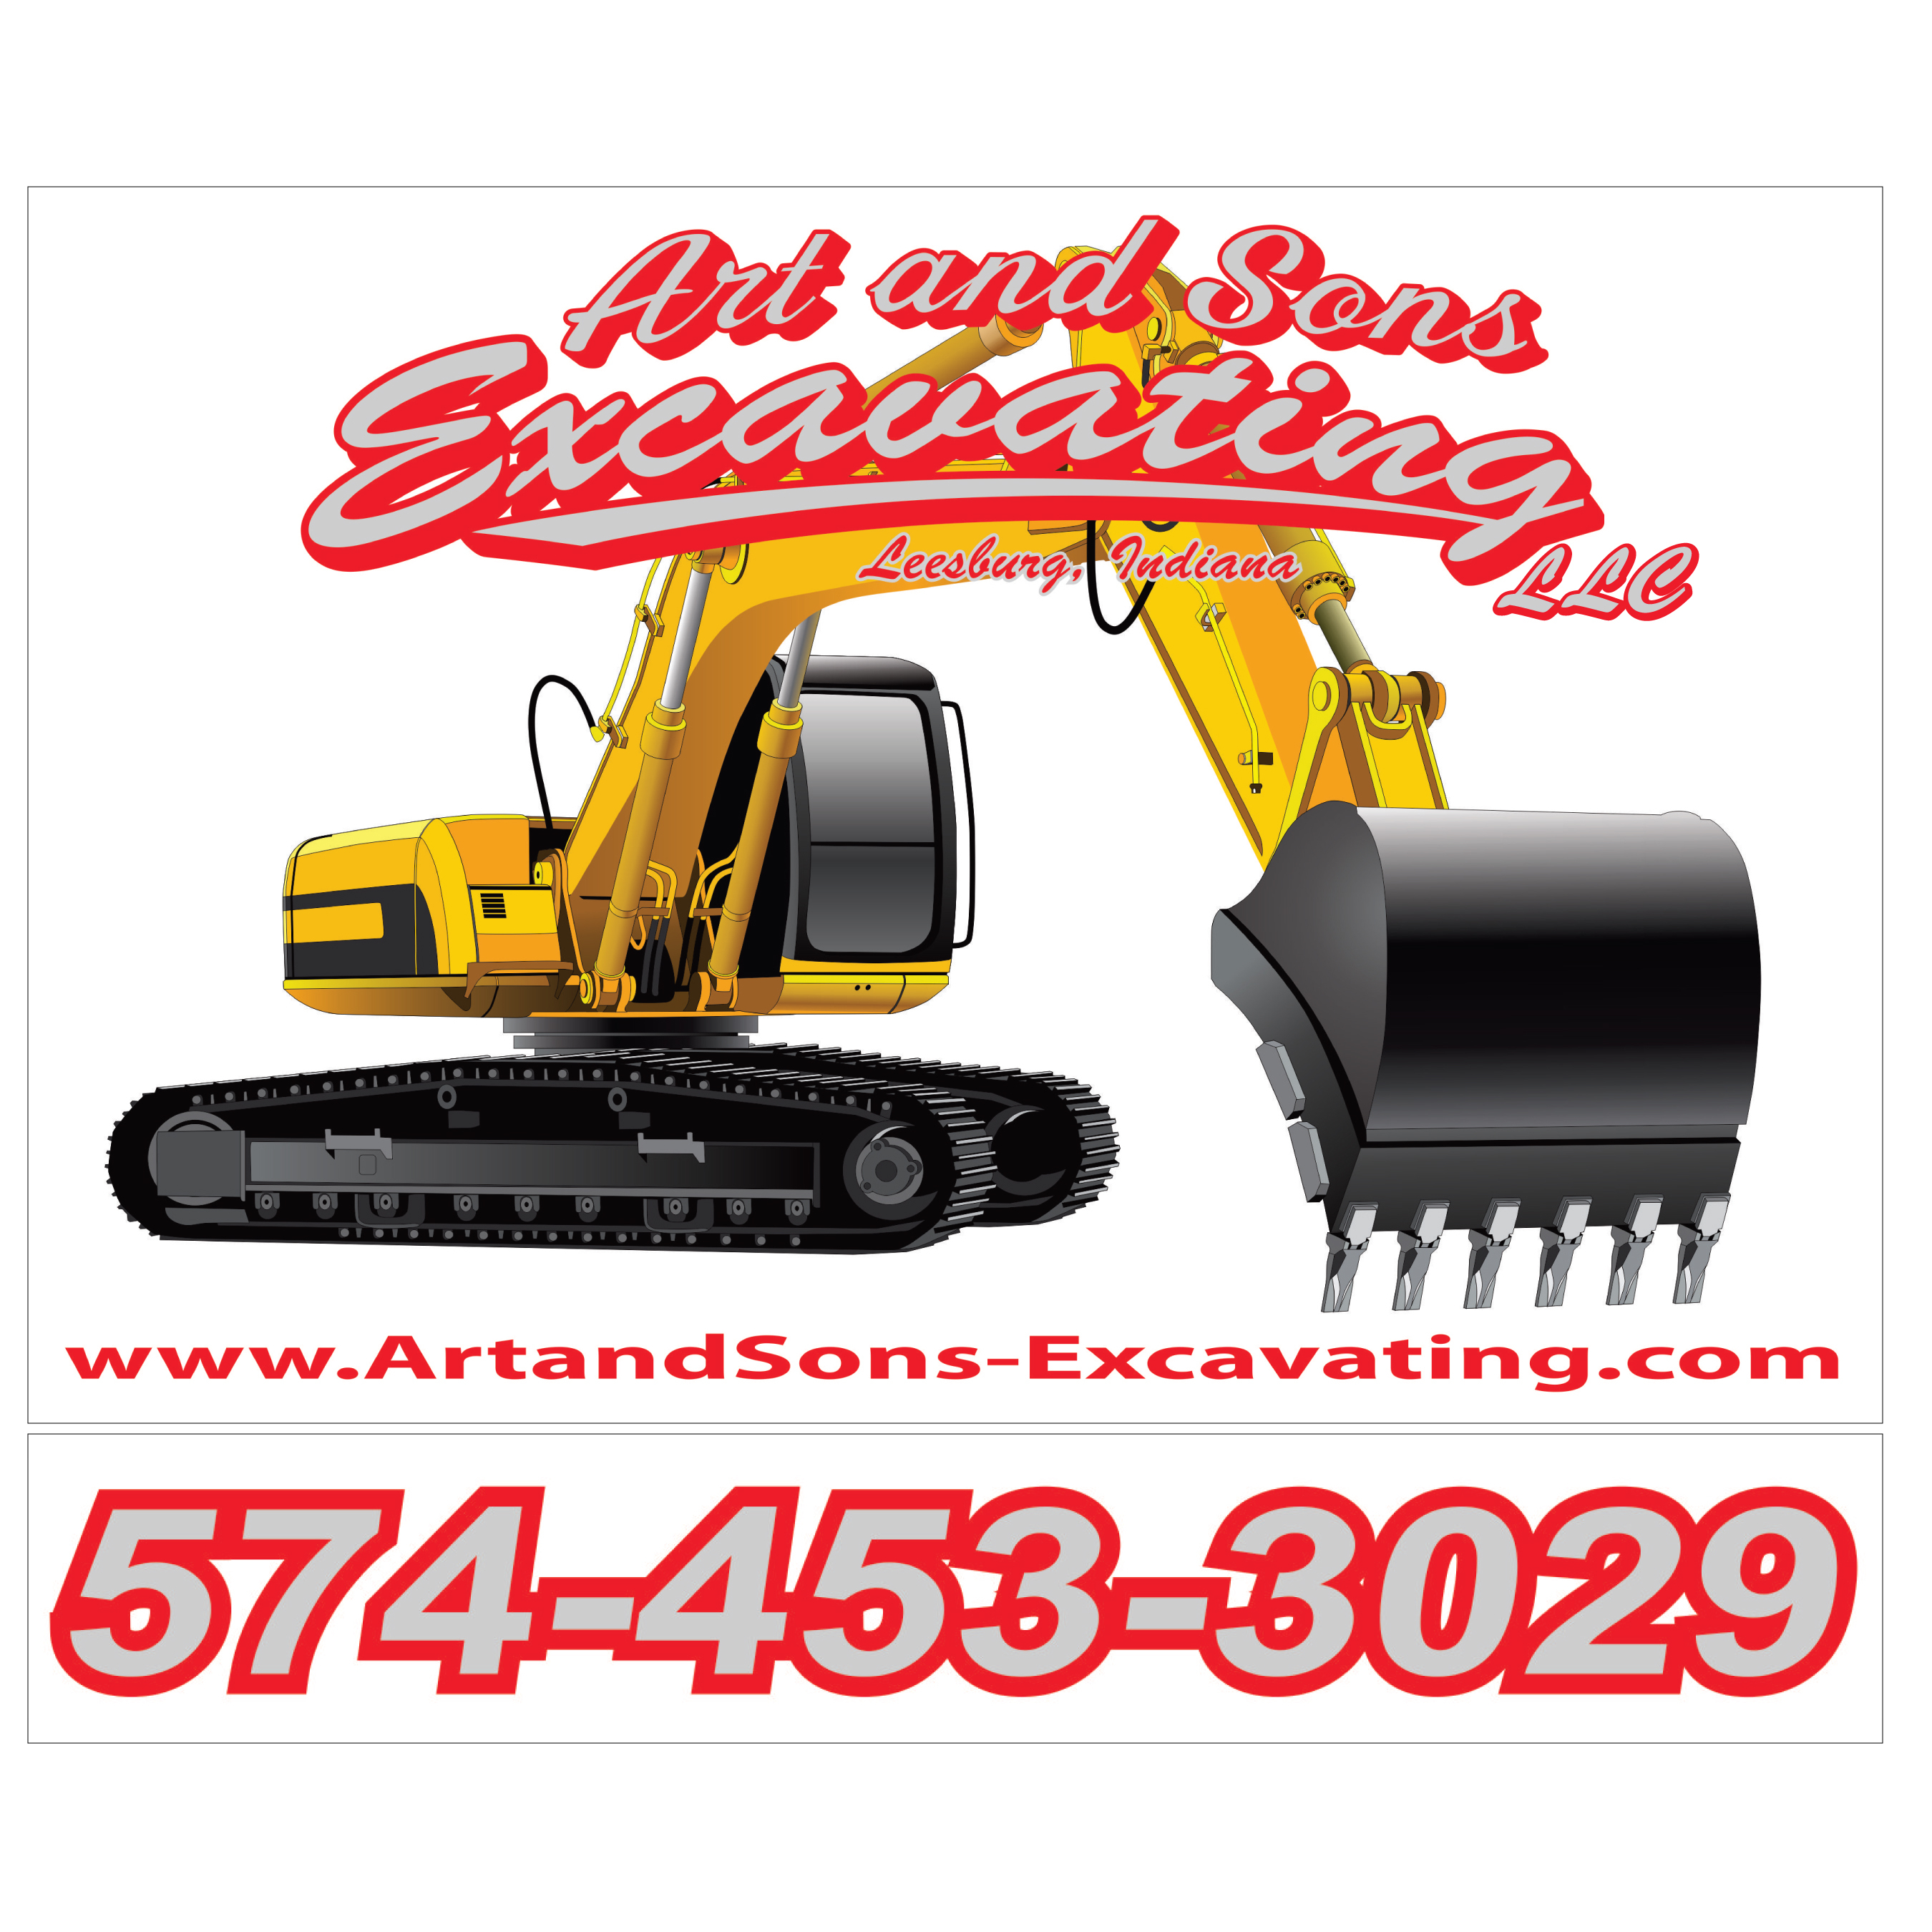 Art and Sons Excavating Llc